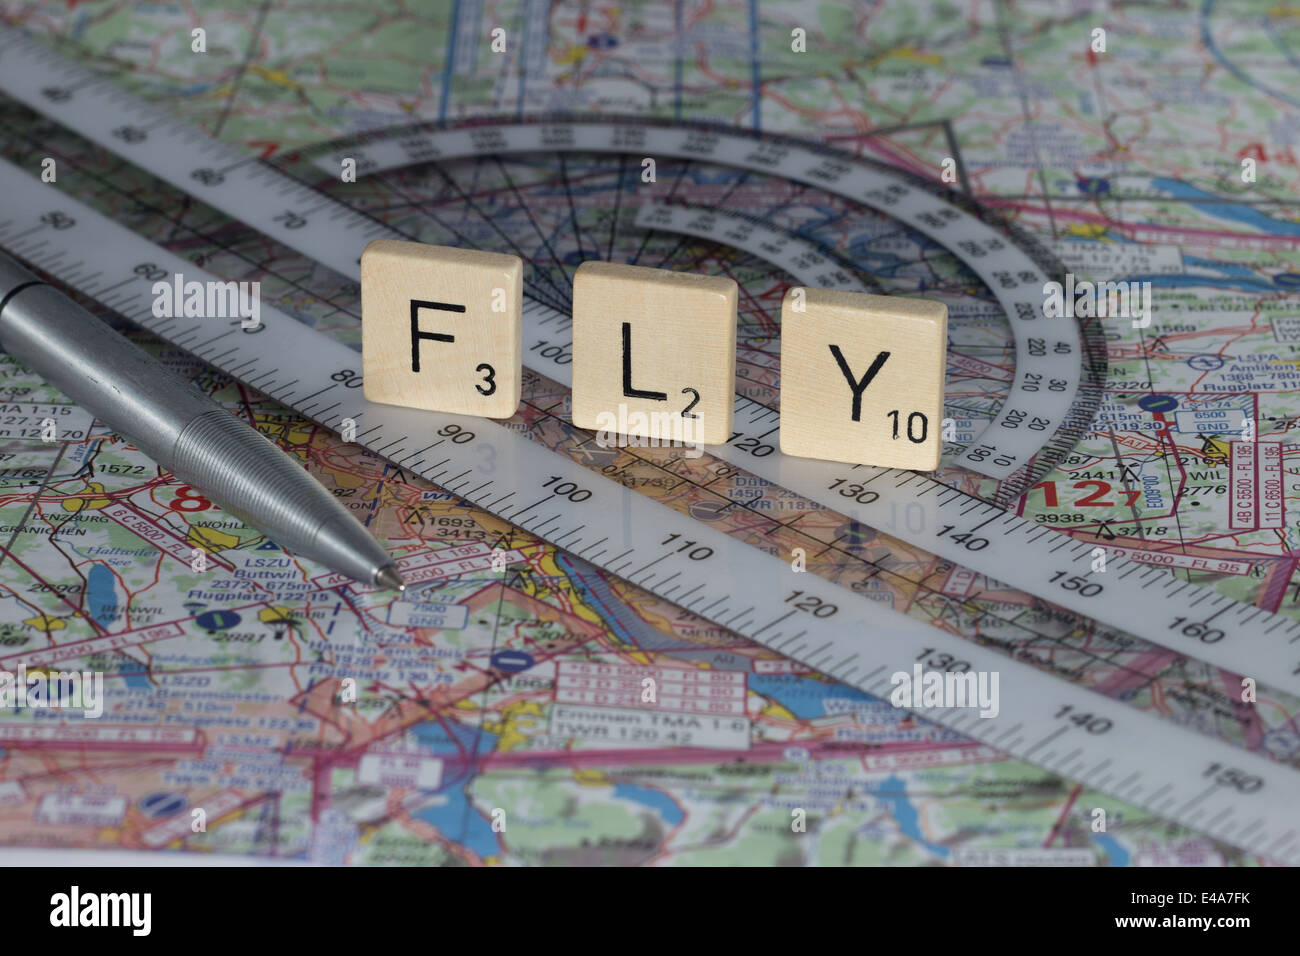 Flight Planning with Chart and Ruler - Stock Image